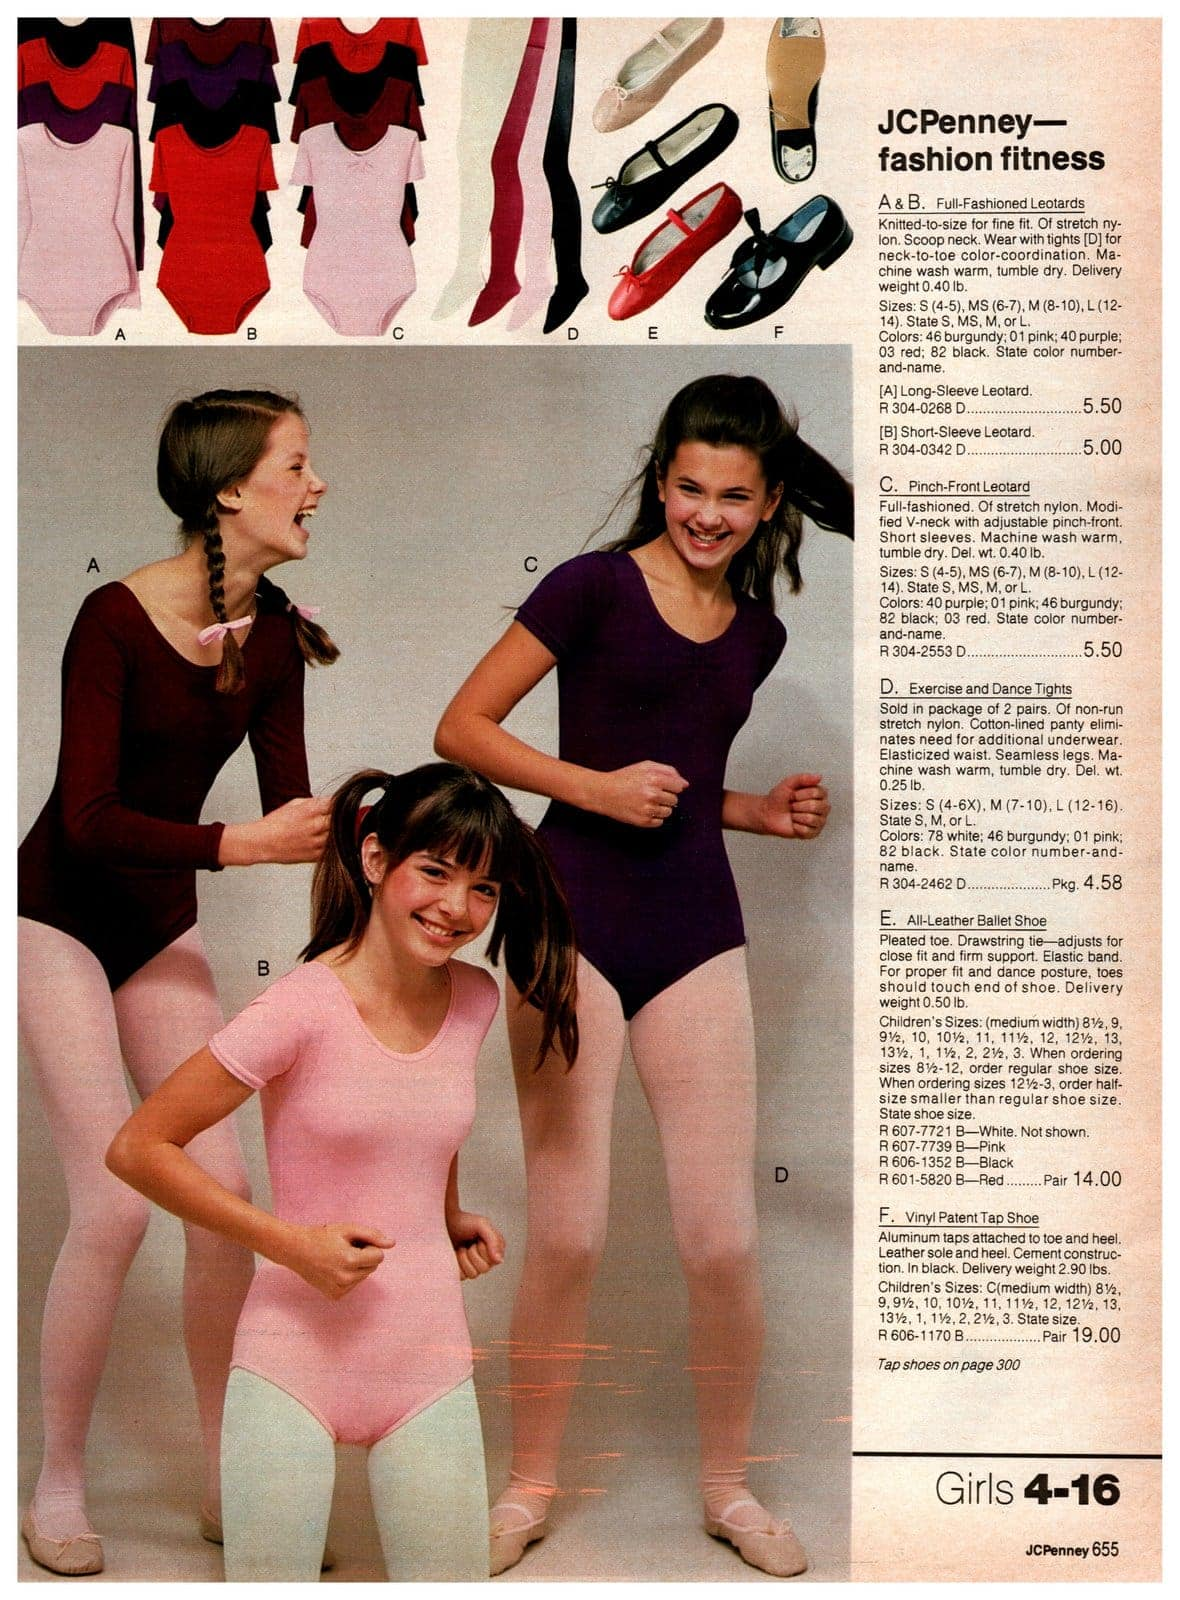 Fashion fitness and leotards for girls from the '80s